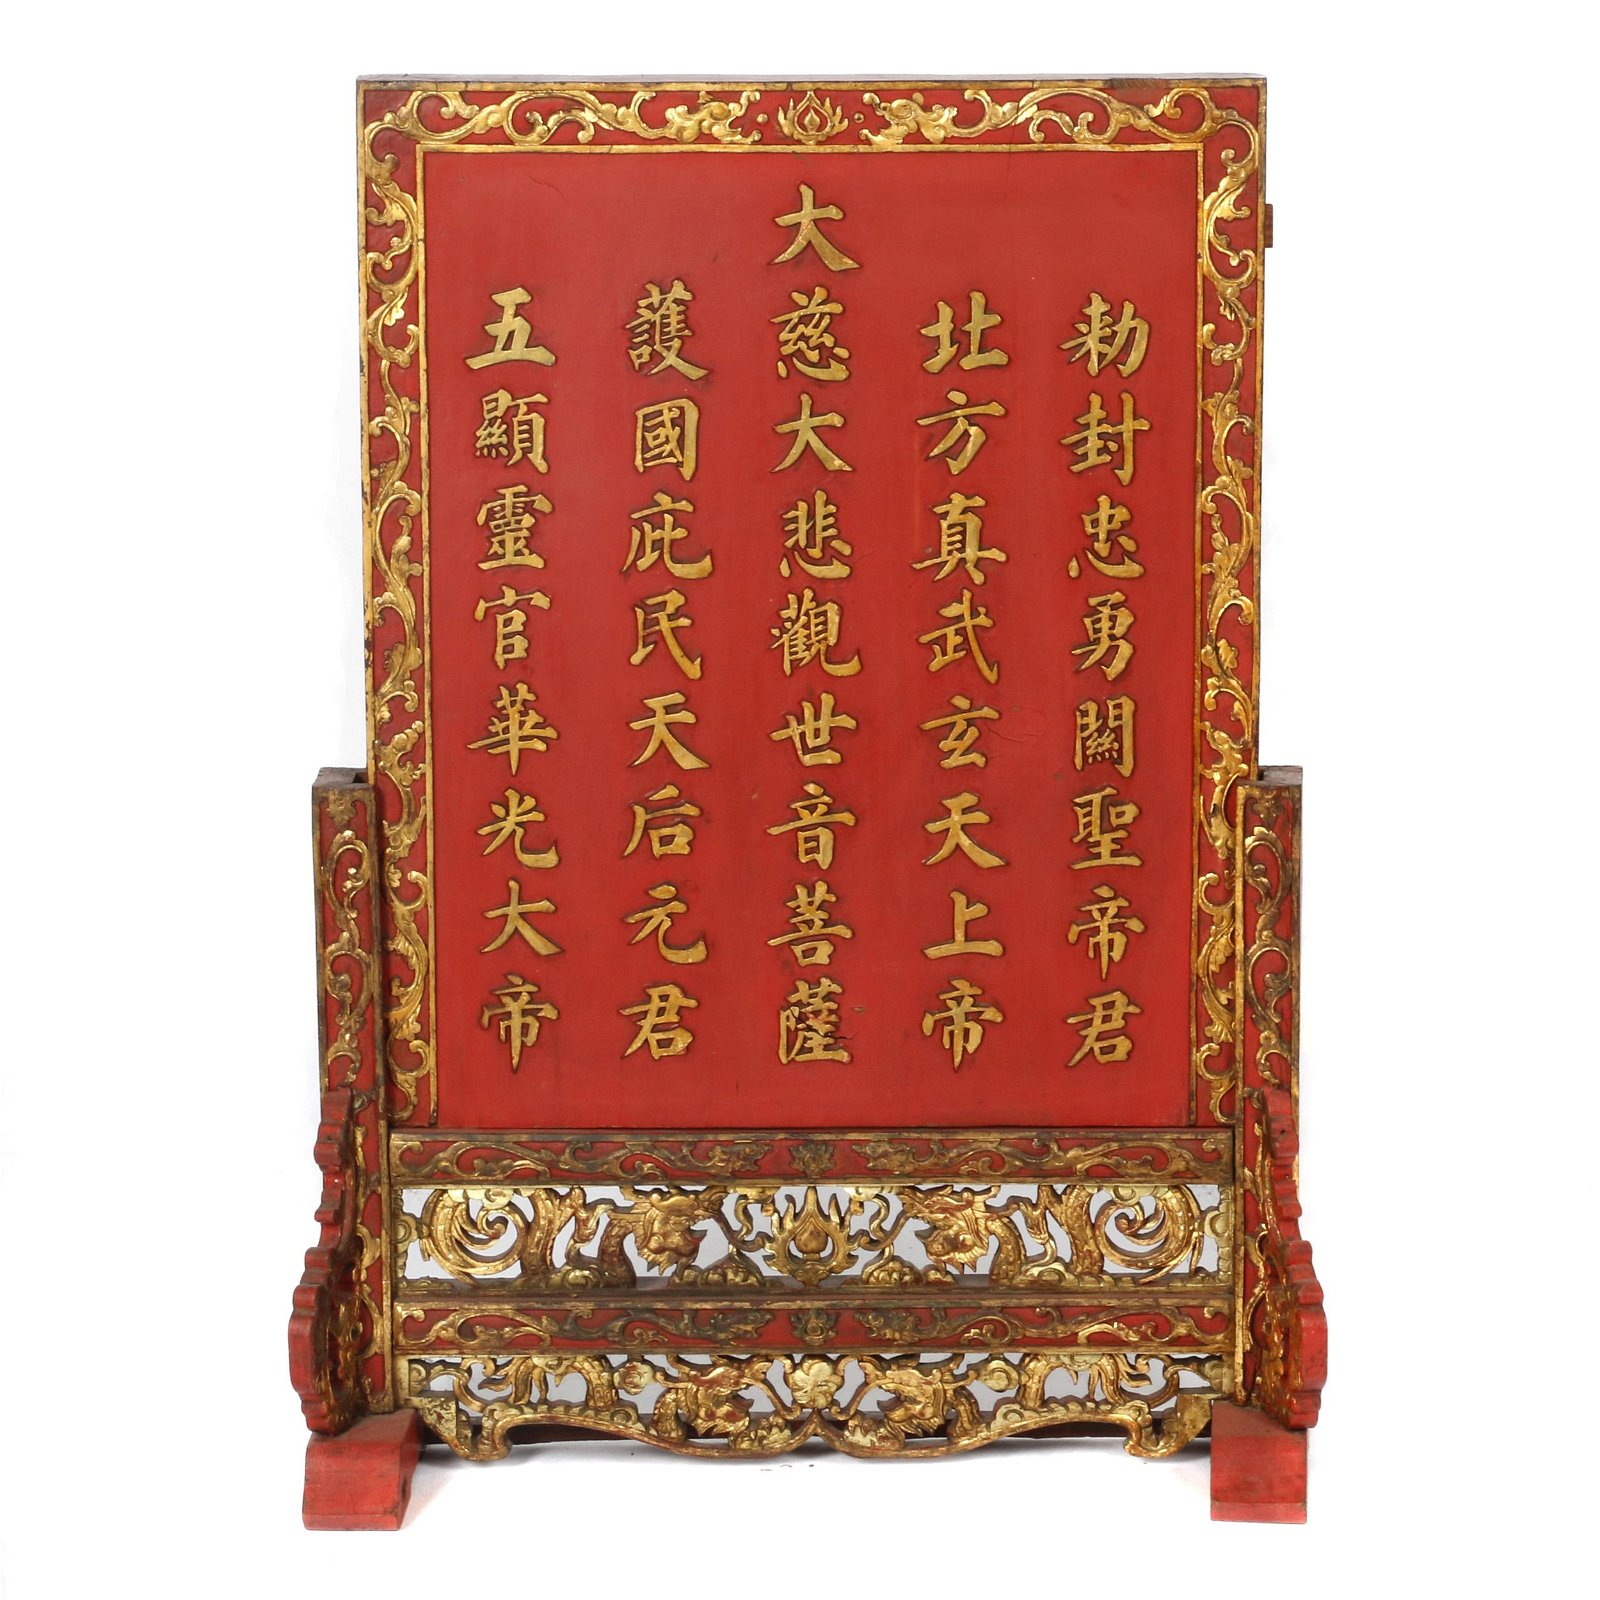 Red and Gilt Lacquer Painted Table Screen, late Qing